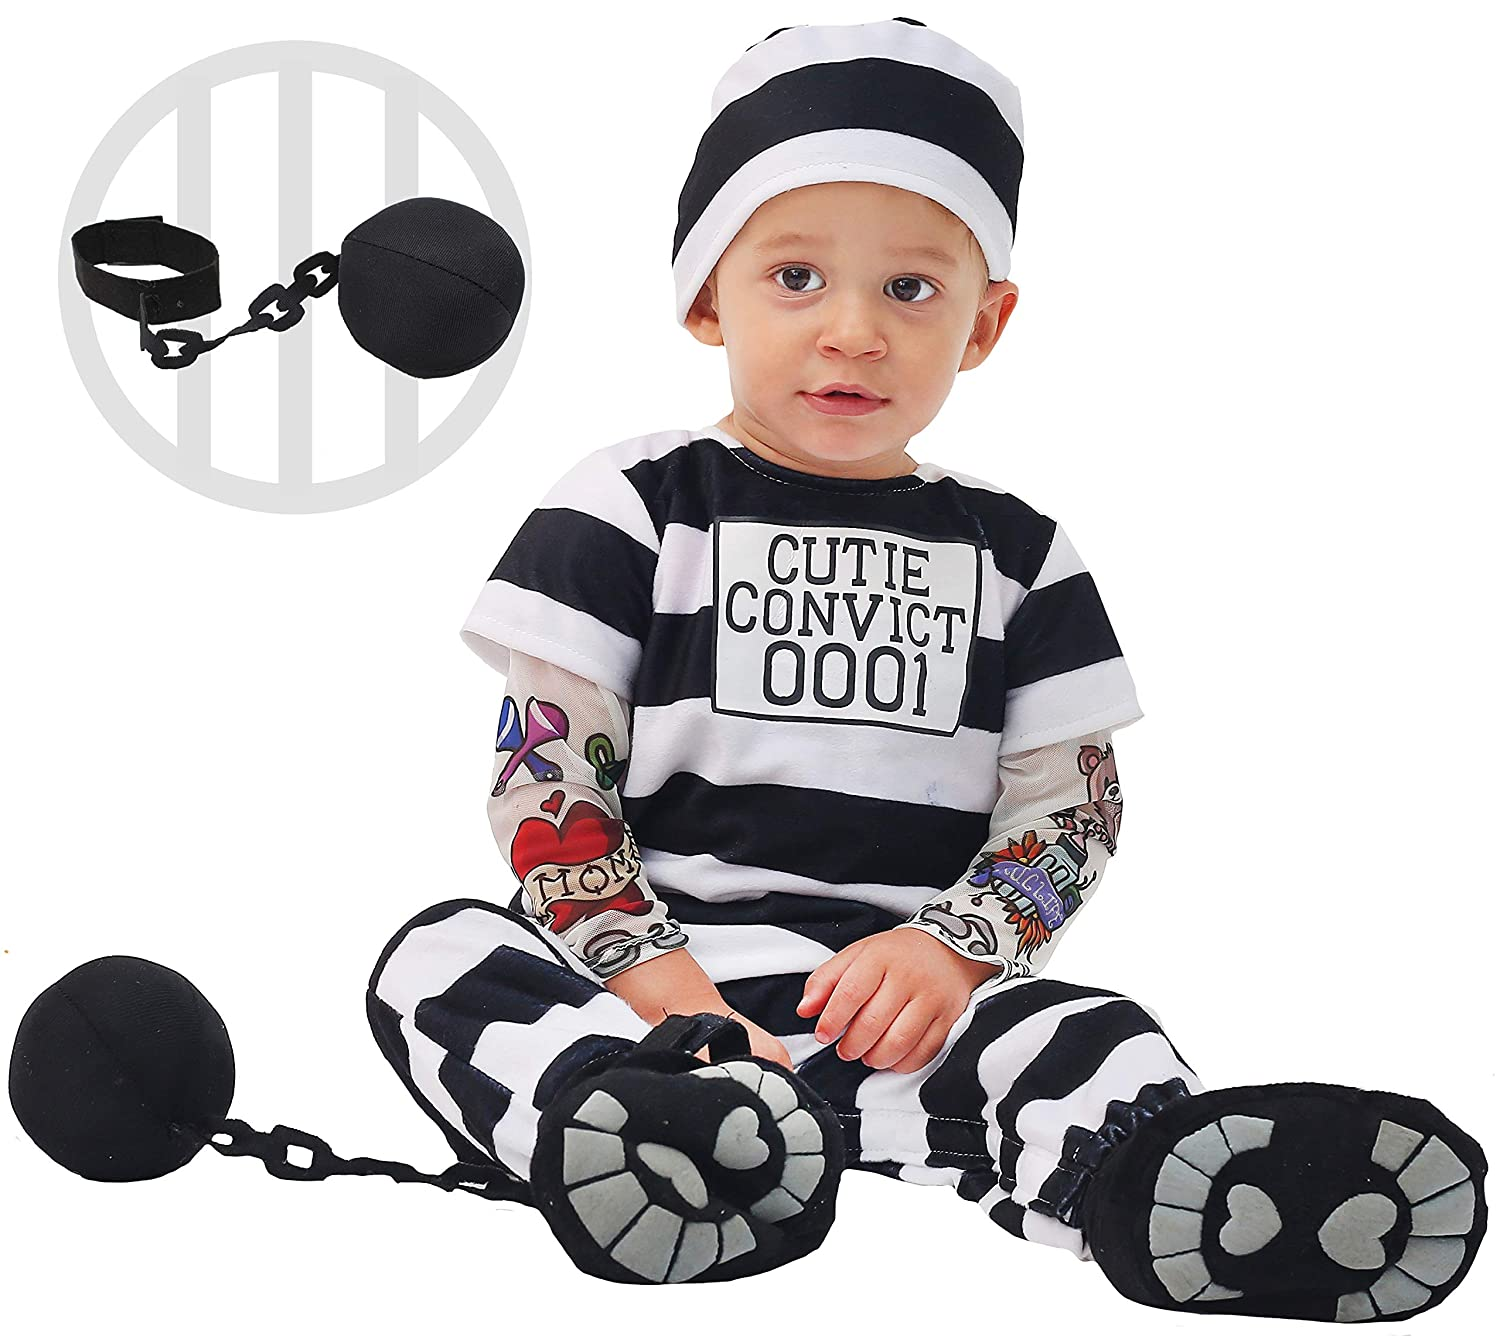 Spooktacular Creations Lovely Baby Prisoner Convict Costume Infant Deluxe Set Halloween Jail Dress Up Party Joyin Inc